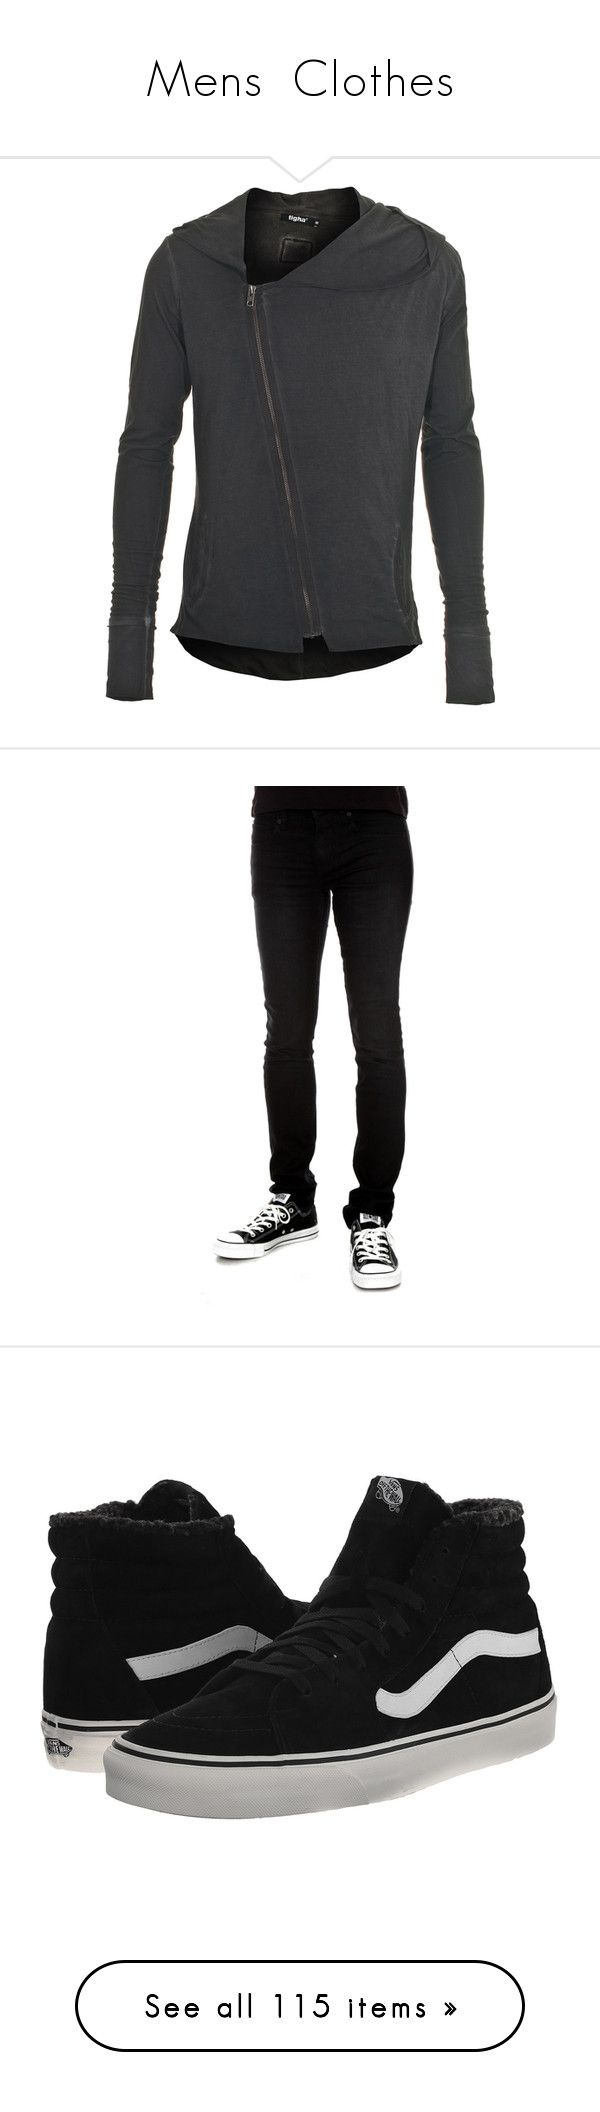 """Mens  Clothes"" by im-simply-2-mad ❤ liked on Polyvore featuring men's fashion, men's clothing, men's hoodies, mens sweatshirts and hoodies, mens zip up hoodies, mens cotton hoodies, mens slim fit hoodies, mens grey hoodies, jeans and pants"